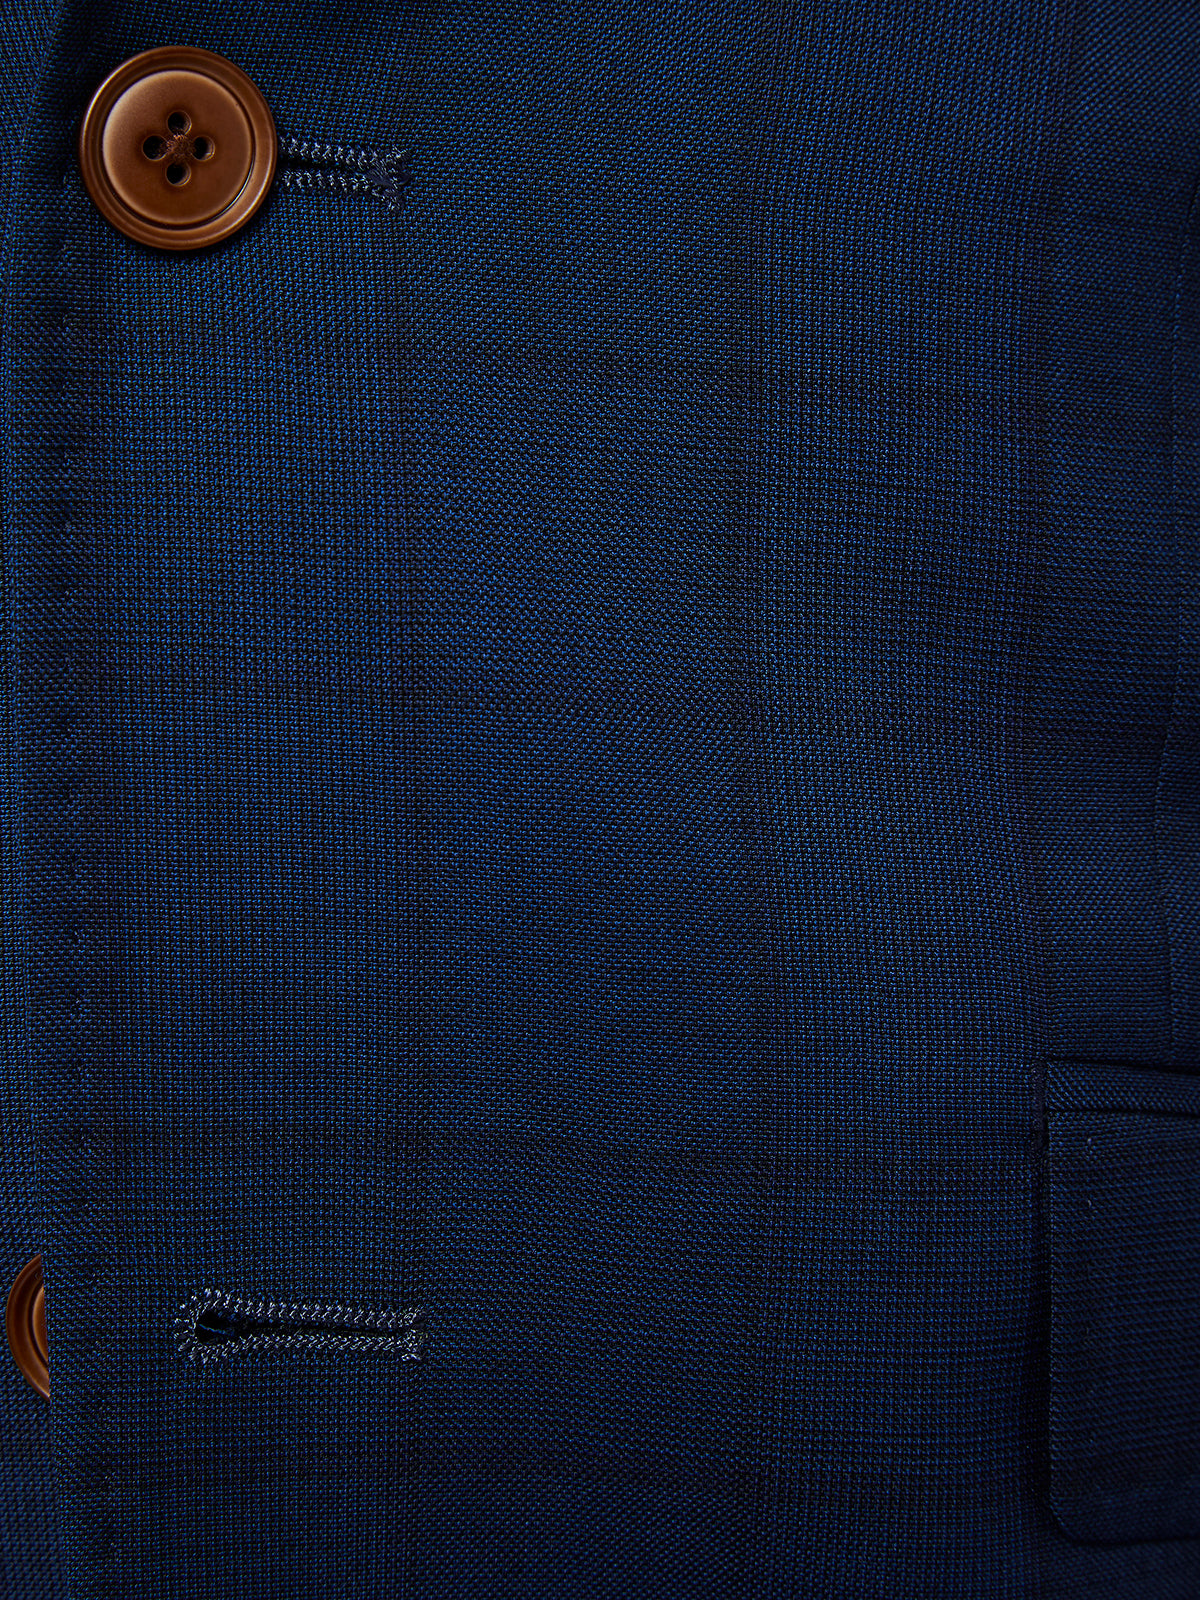 NEW HOPKINS WOOL SUIT JACKET BLUE